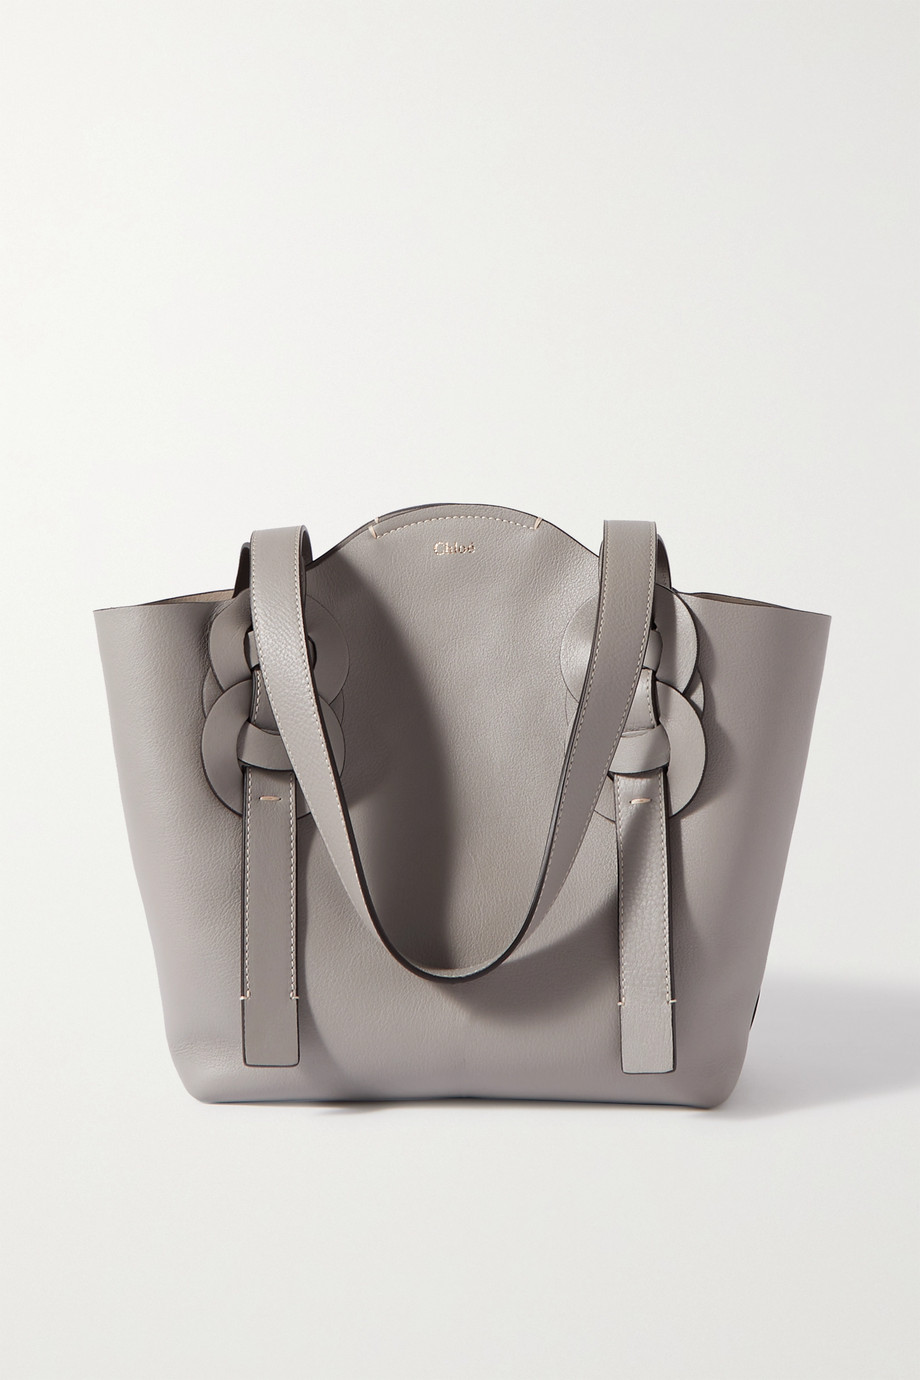 Chloé Darryl small braided leather tote